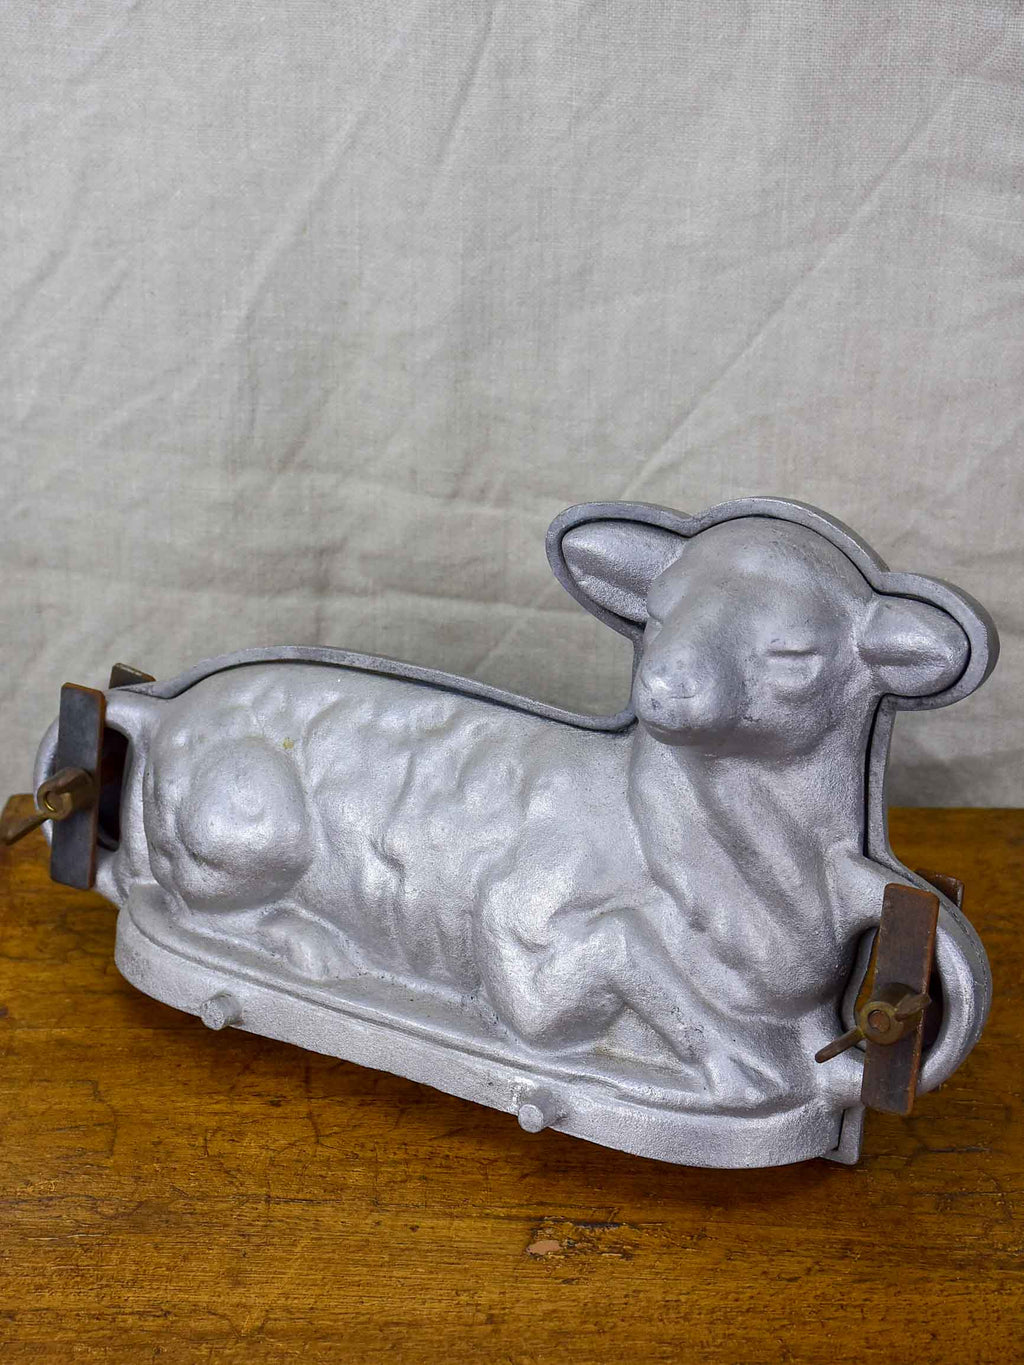 Vintage French terrine mold in the form of a lamb